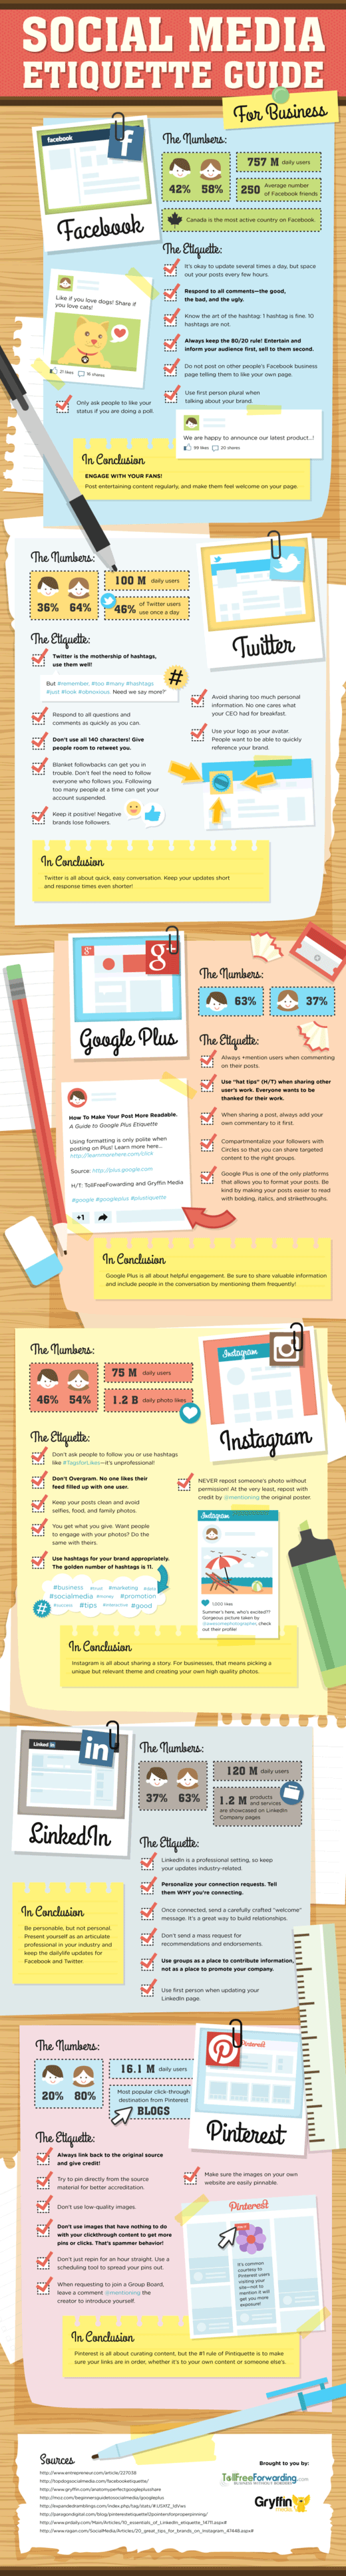 Get a more detailed look at social media do's and don'ts with this great infographic.